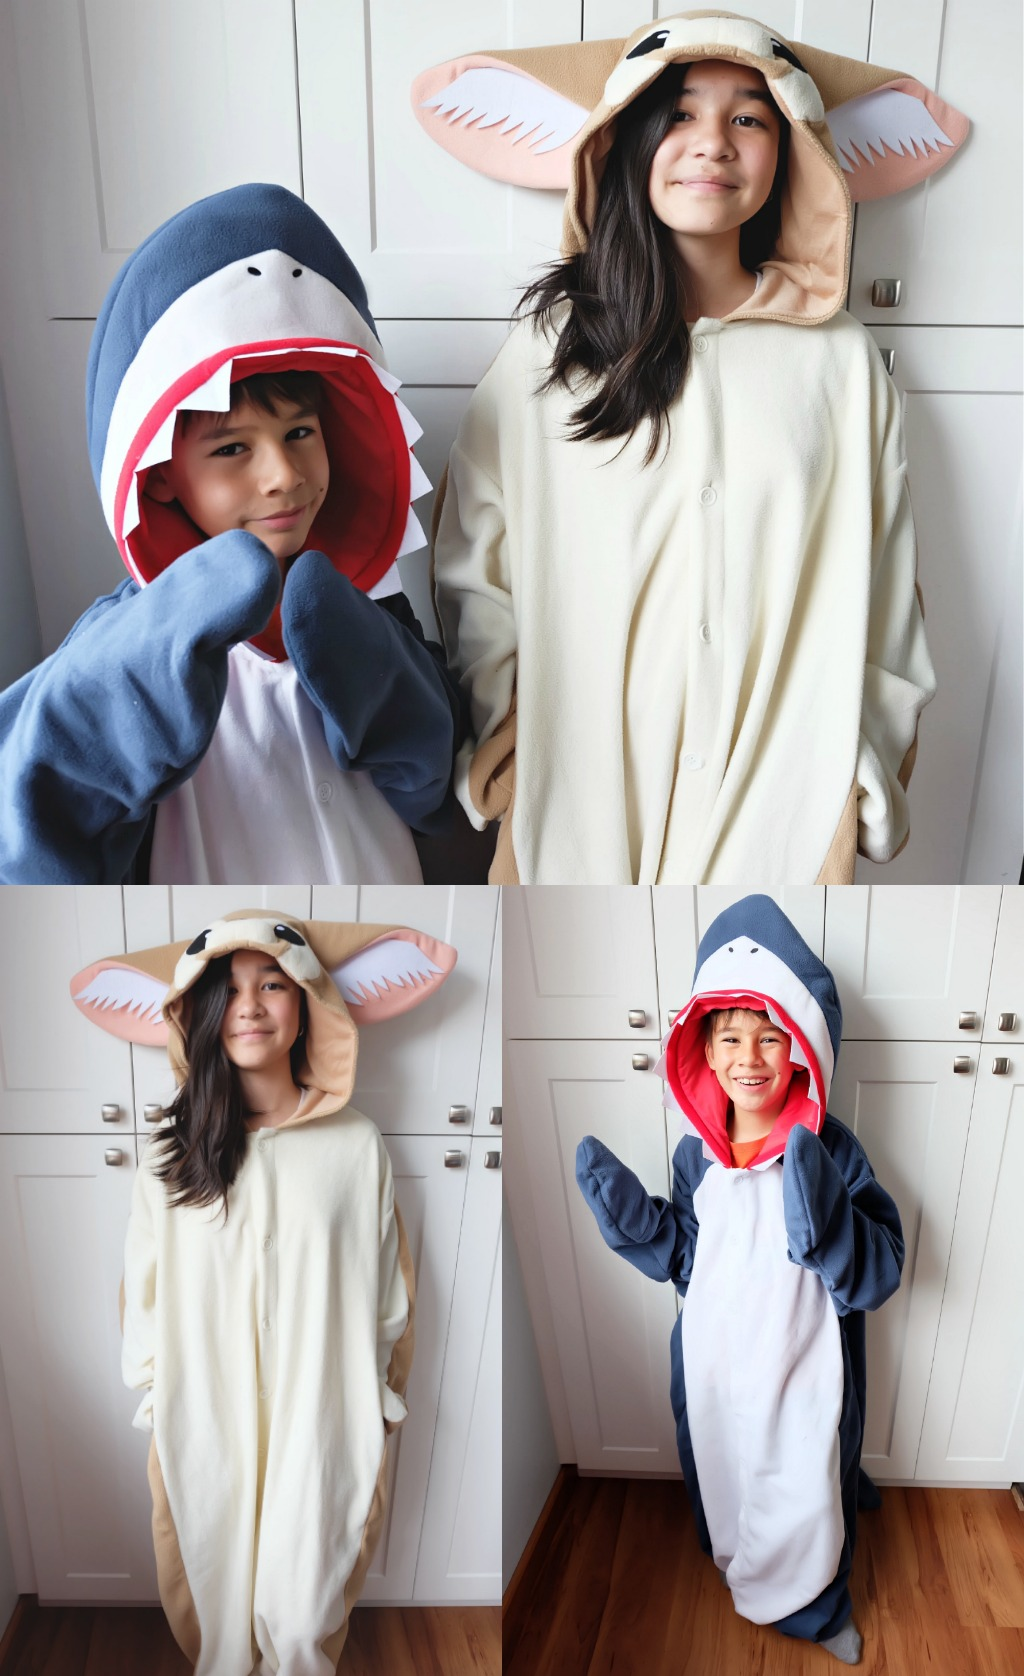 DIY not your thing? Kigurumi has adorable onesies in kid and adult sizes that come in all of your favorite animals and cartoon characters! I love them because like these animal hoodies, they can be worn not just on Halloween but all year long! My kids have the Shark Kigurumi and the Fennec Fox Kigurumi and they love them. I, myself adore this adorable Panda Kigurumi! I think it's probably the cutest panda onesie in the whole wide world! Do you agree?